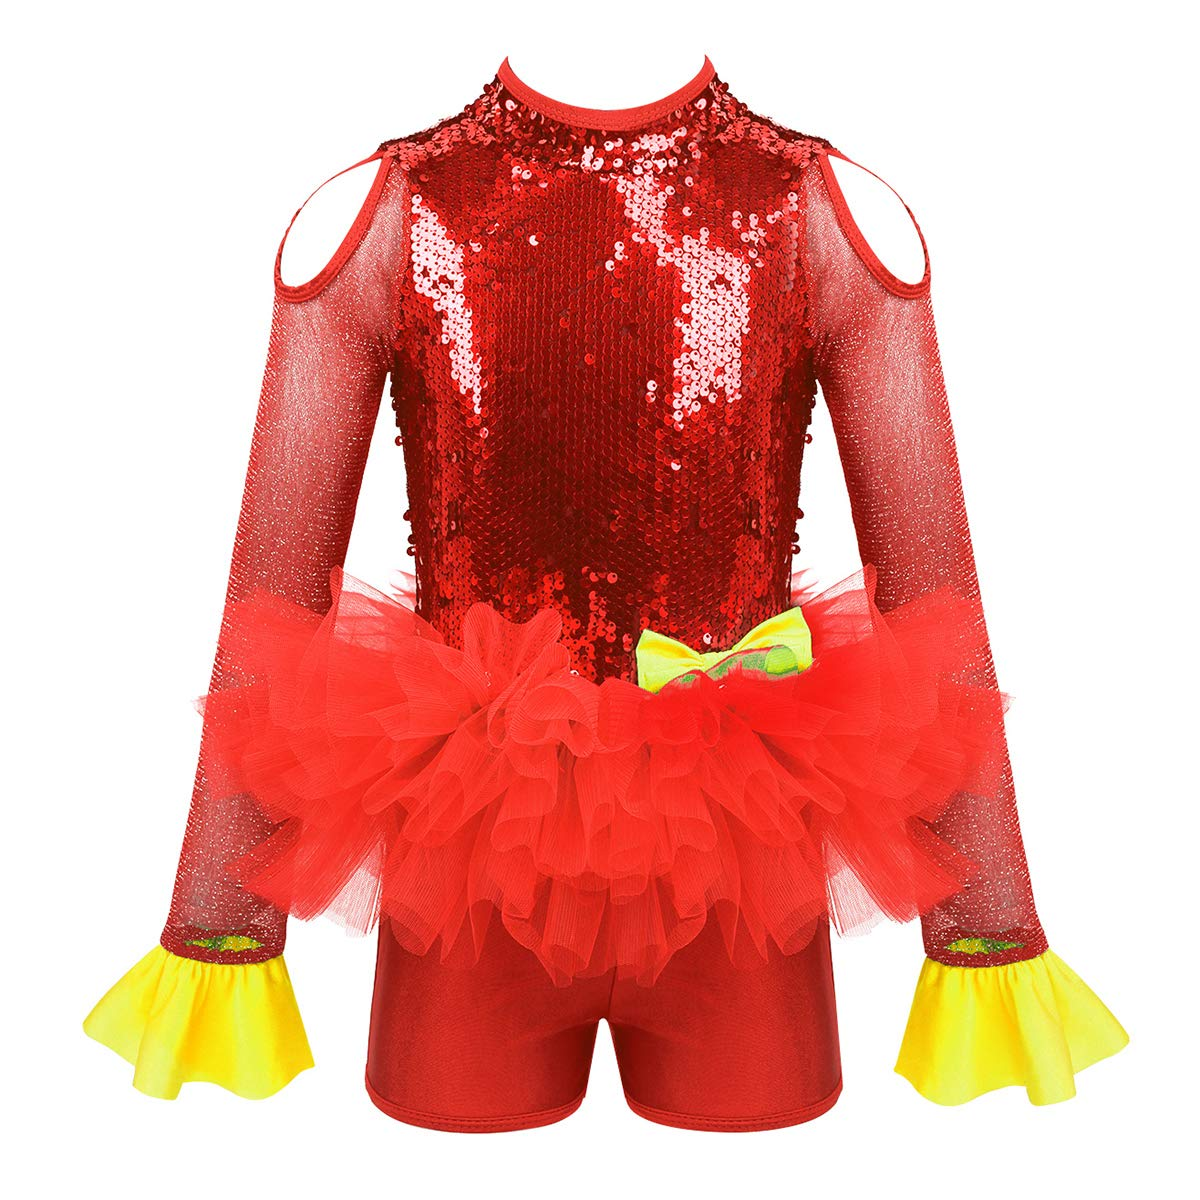 Agoky Kids Girls Sequins Ballet Dance Tutu Dress Jazz Latin Street Stage Performance Costume Athletic Outfits